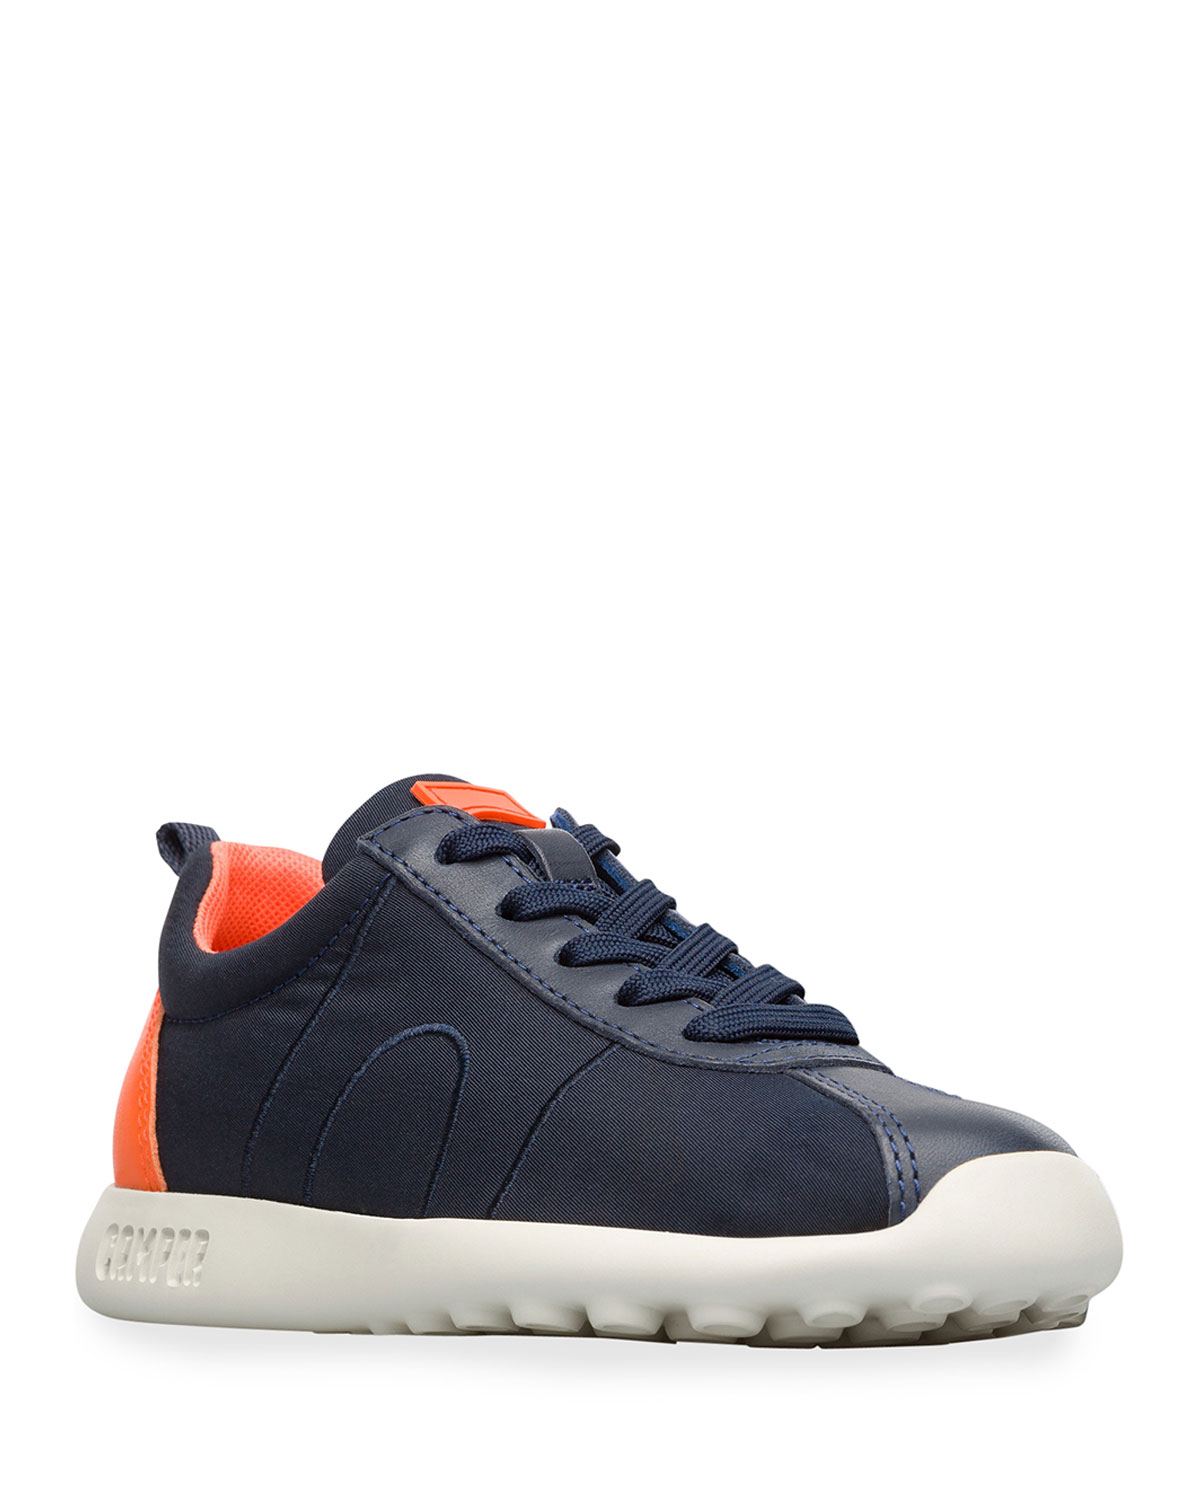 Kid's Leather Trim Sneakers